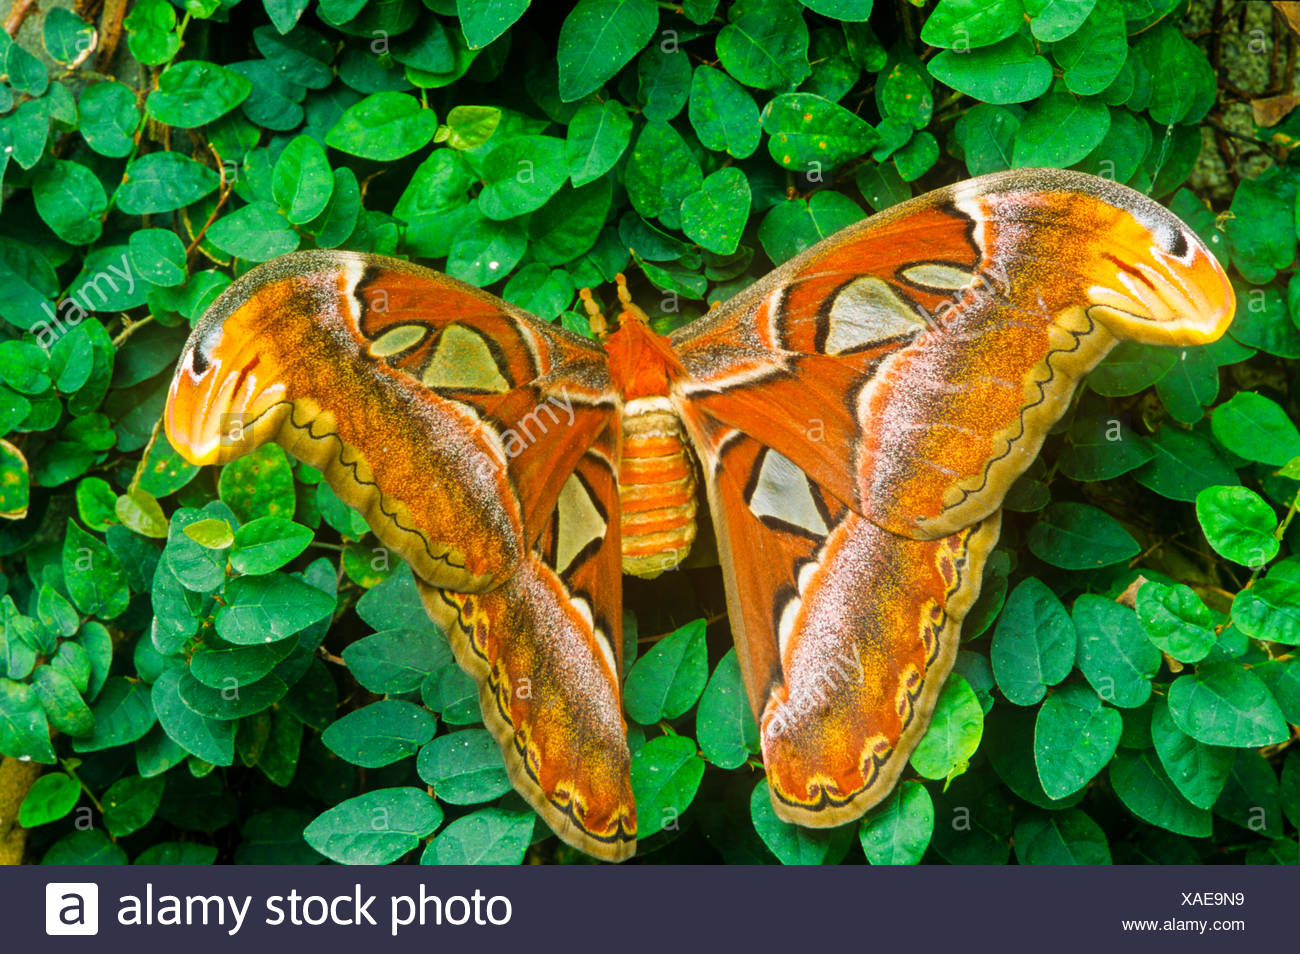 Adult Atlas Moth, (Attacus atlas), dorsal view - Stock Image